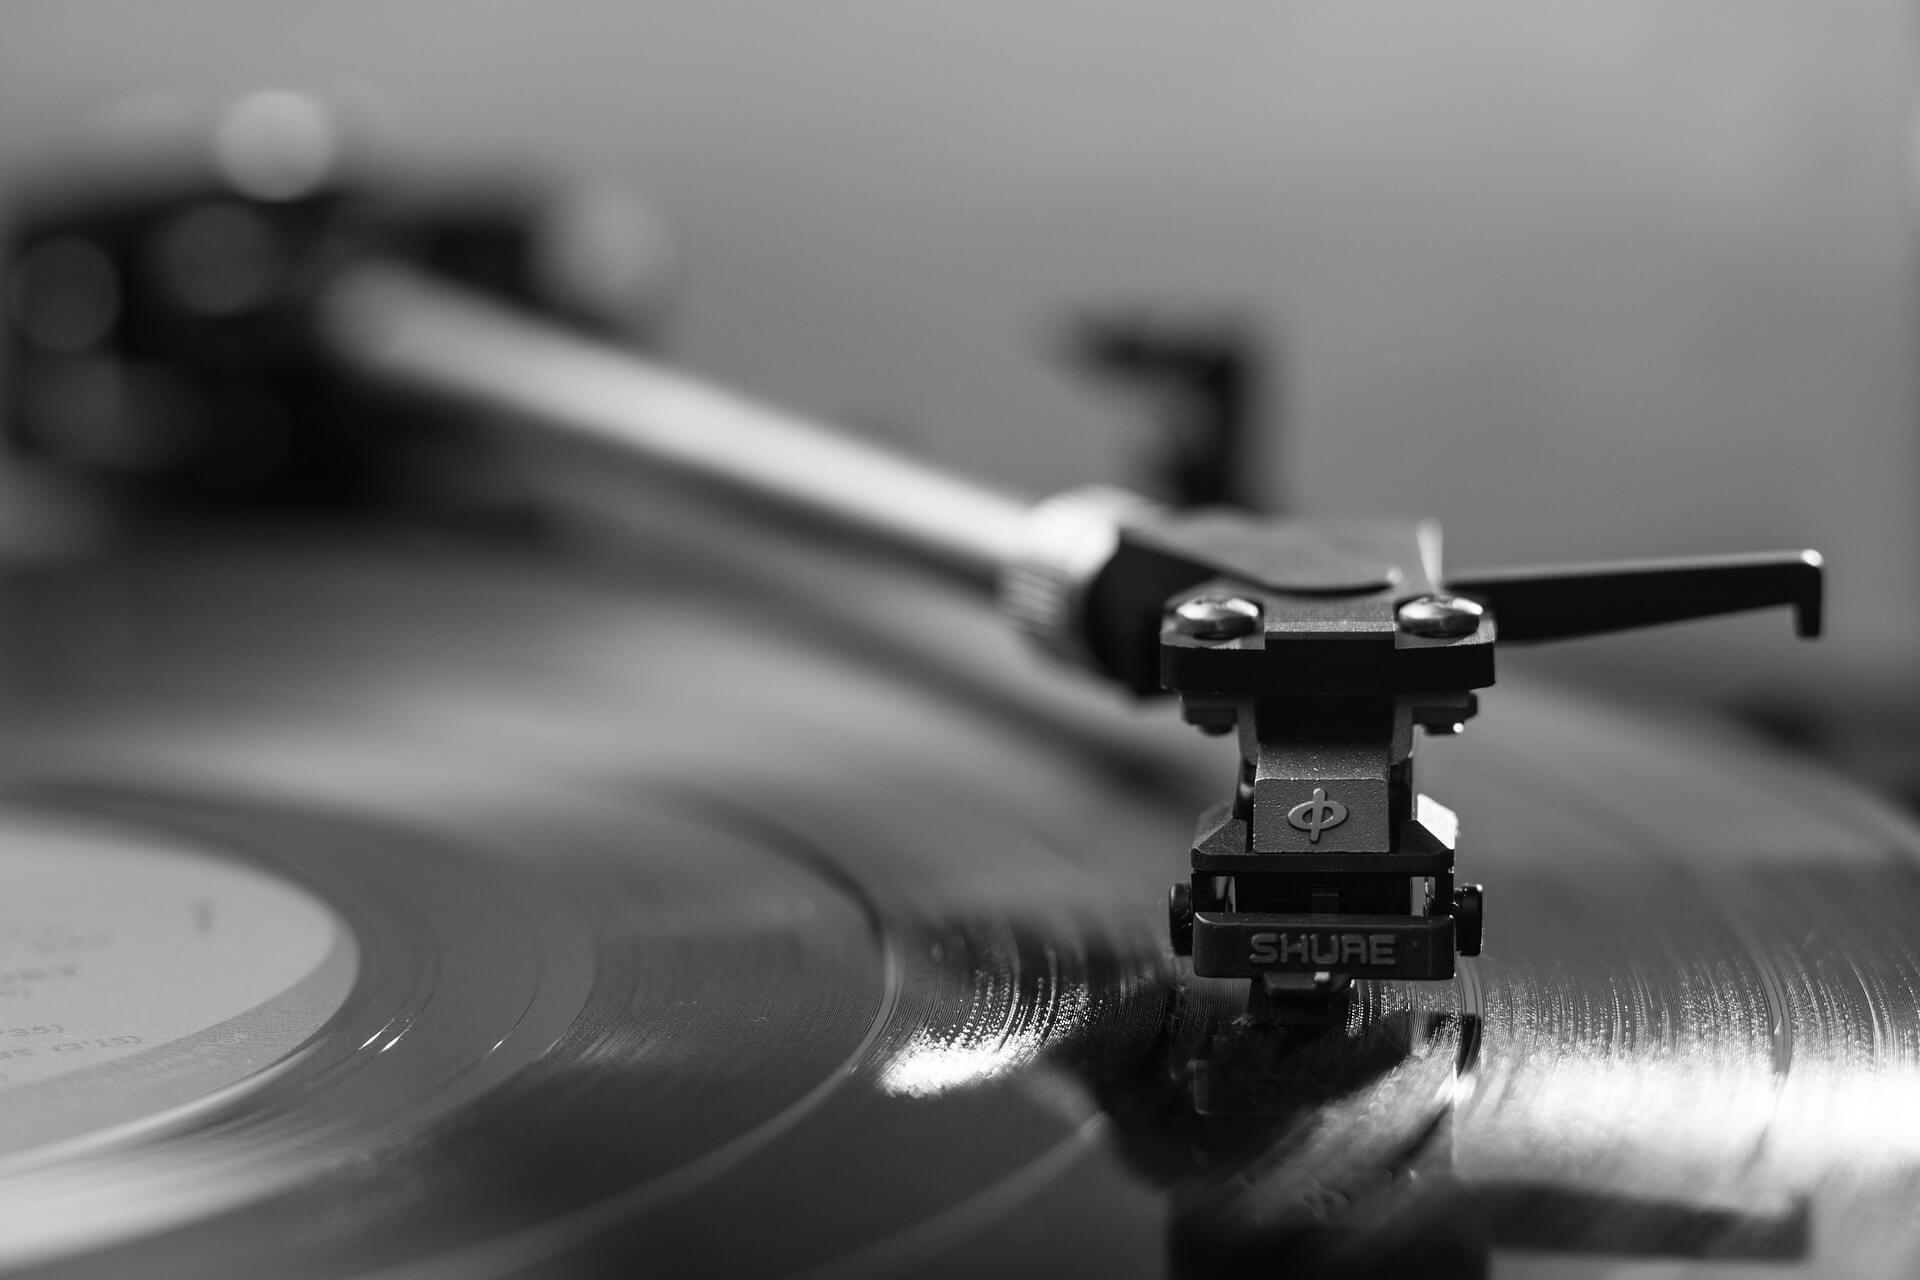 Record player. Photo by Gavin Whitner.